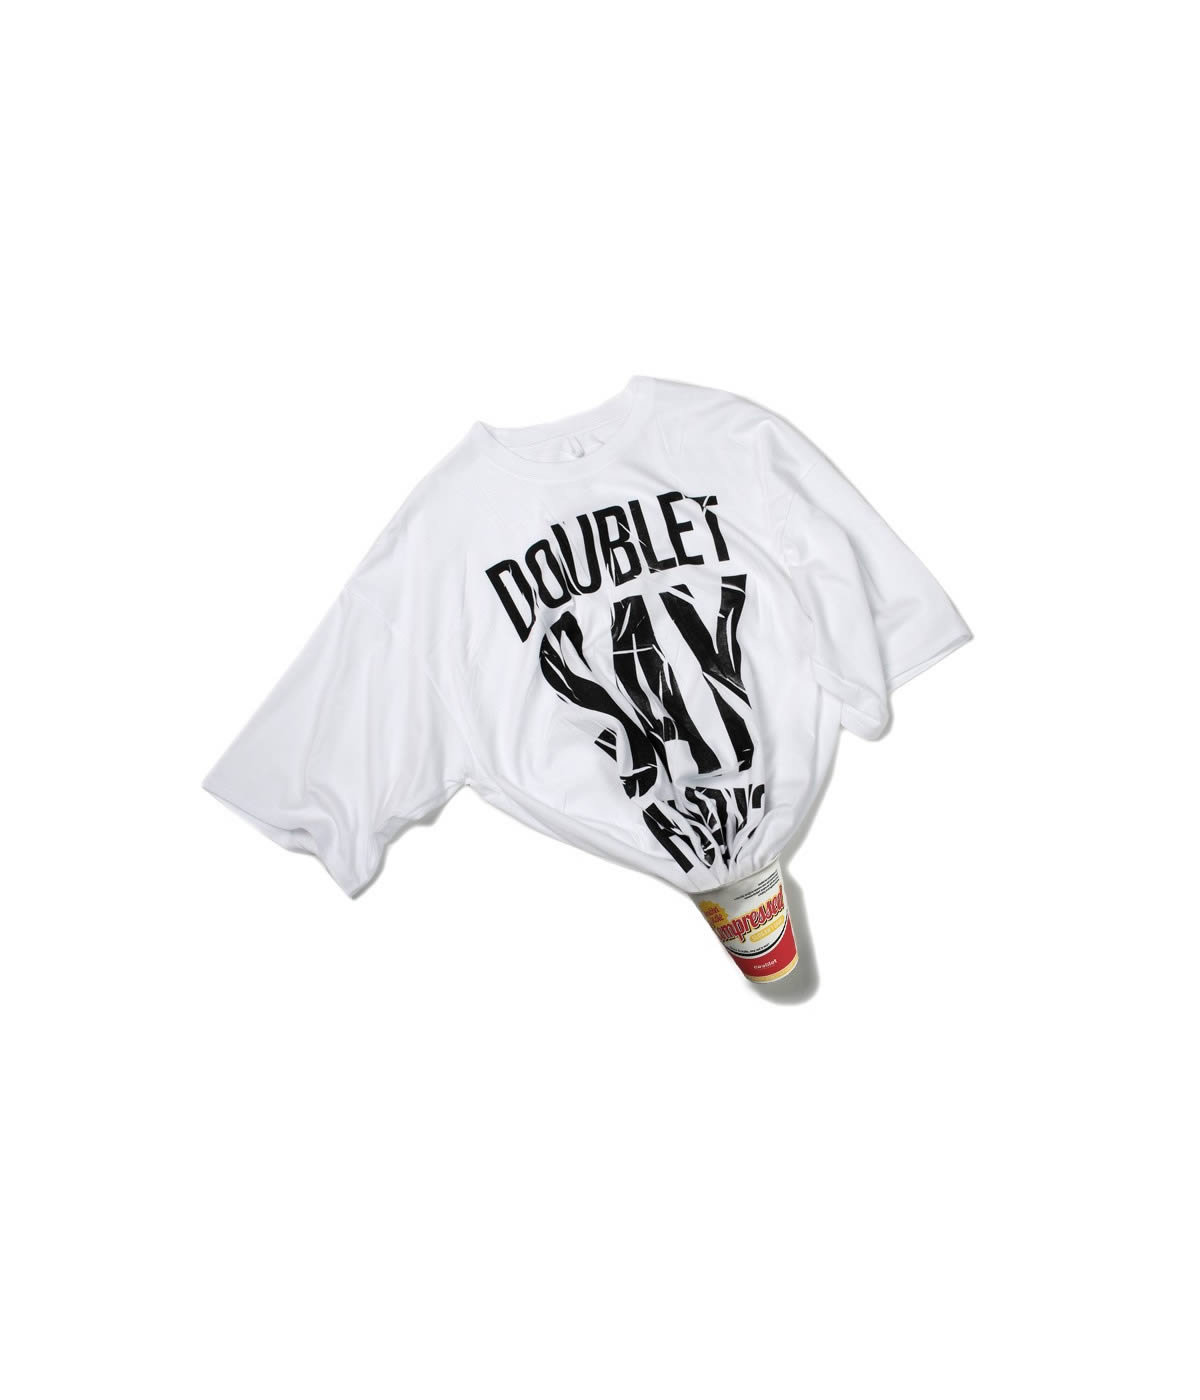 COMPRESSED SLOGAN T-SHIRT IN THE INSTANT NOODLE